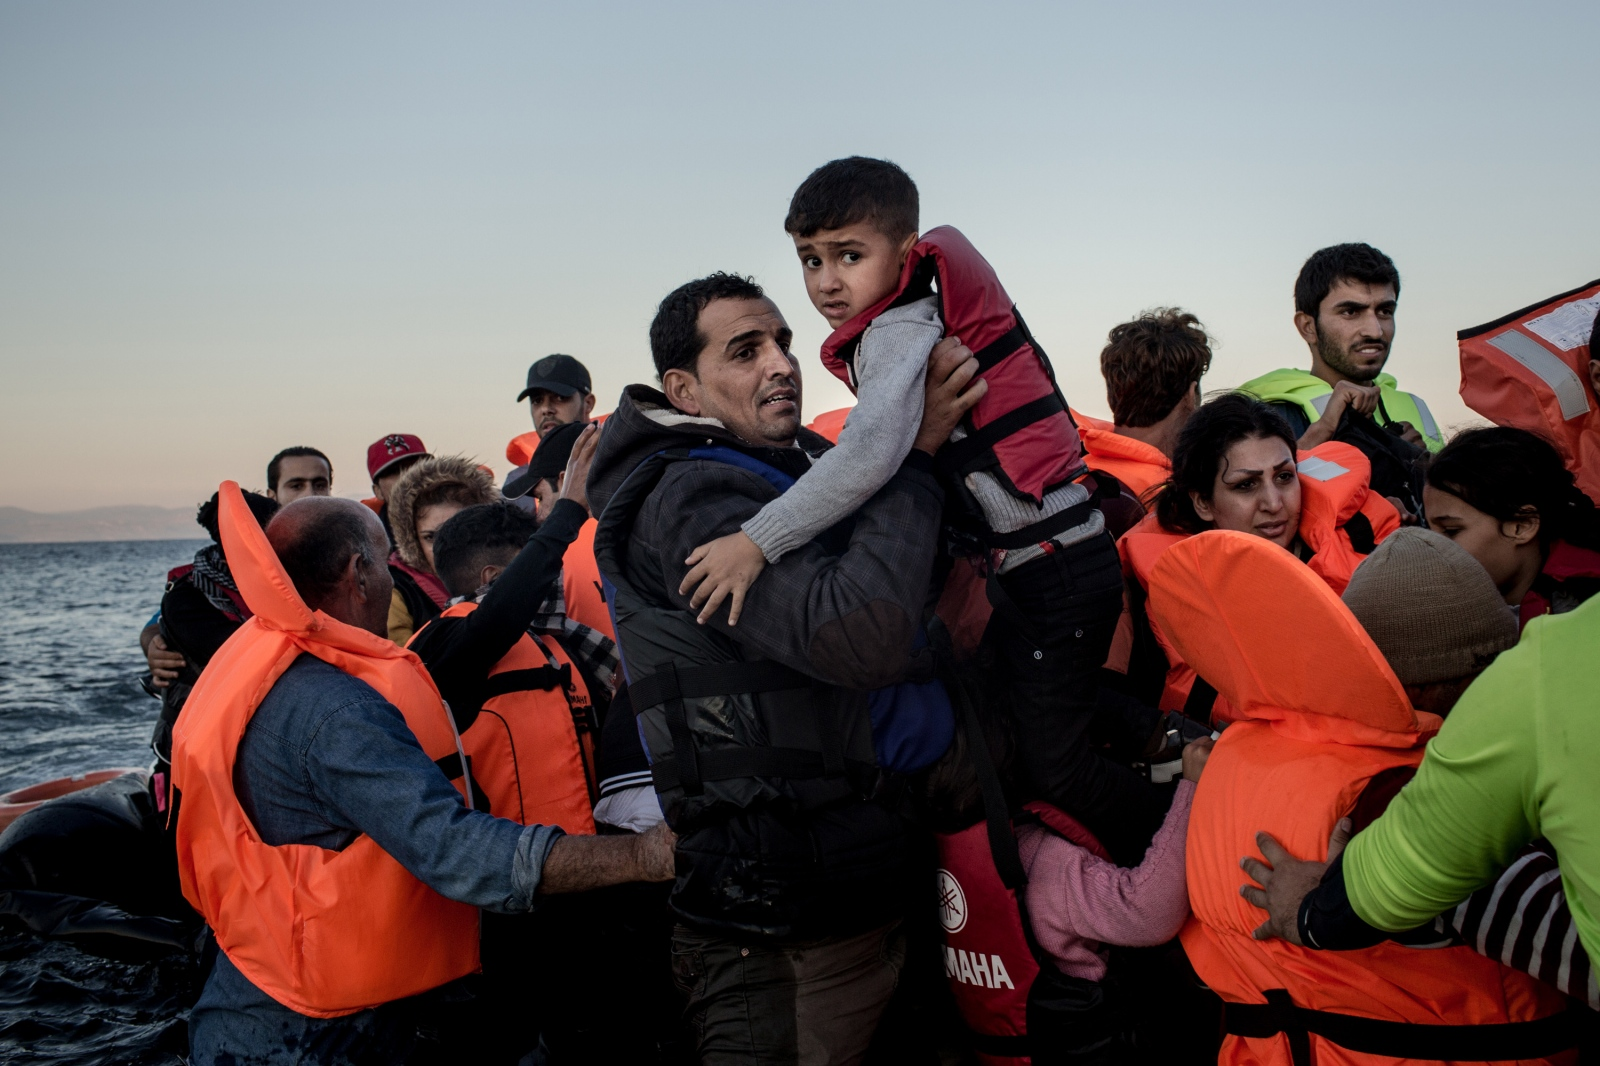 A father carries his son off a rubber dinghy after arriving on the island of Lesbos, Greece, on November 12, 2015. The roughly 1.5 hours journey across the Aegean Sea, on a clear day, costs from anywhere between $900-$3000 per person paid to traffickers on the Turkish side.